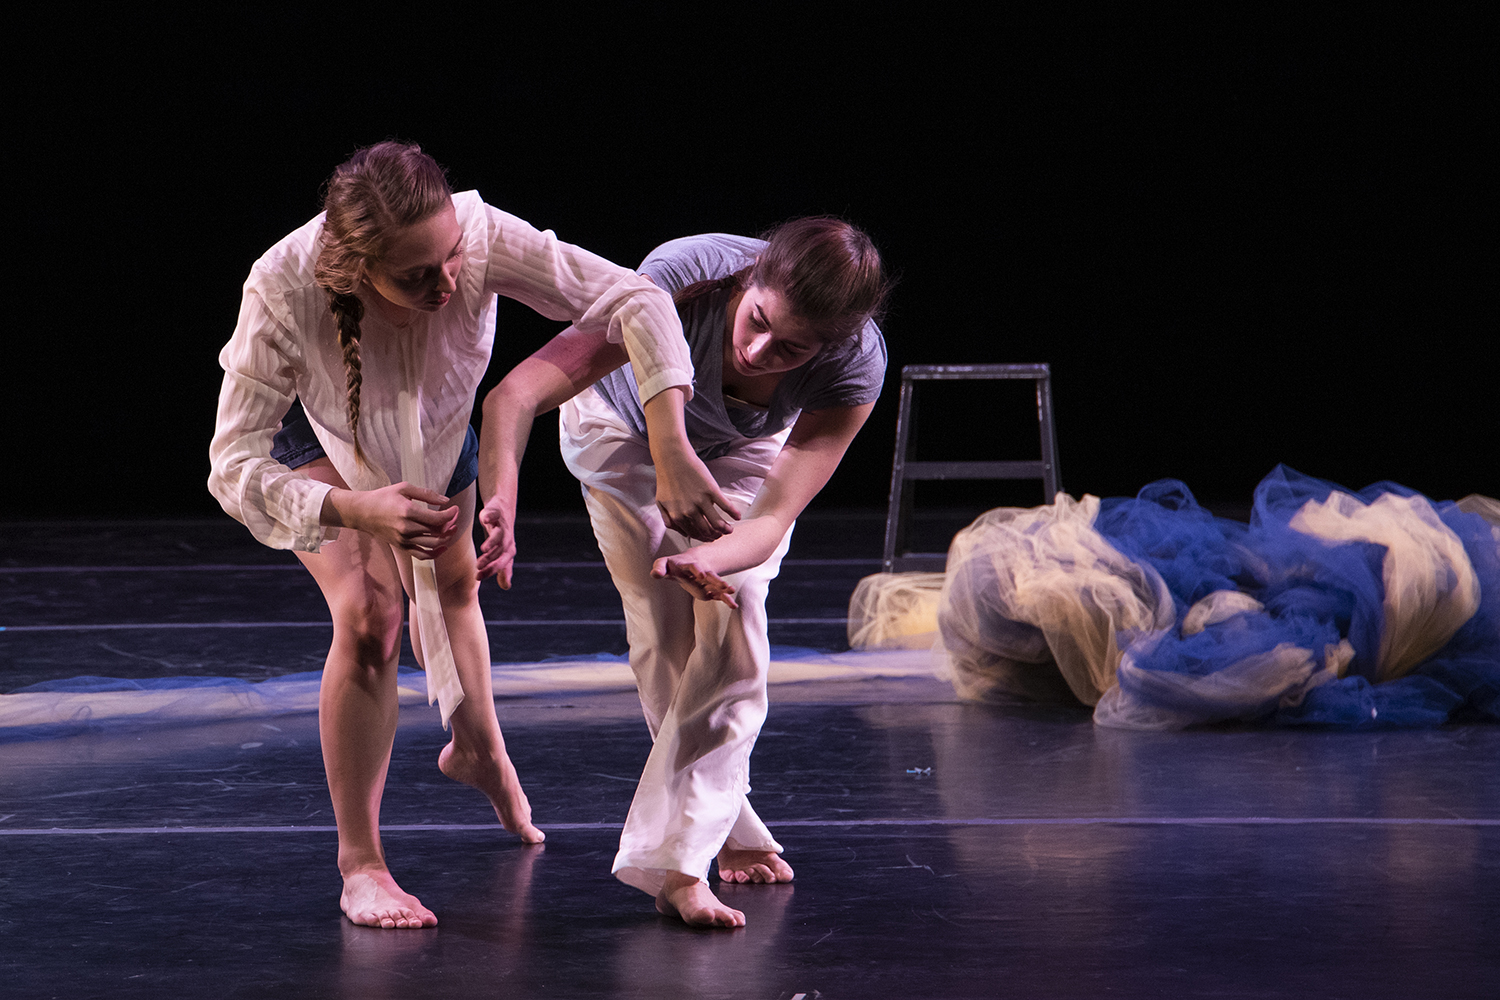 """Juliet Remmers and Kate Vincek perform """"Eternal Somewhere Else"""" during a dress rehearsal of  Words Dance at Space Place Theater on Friday, Nov. 1, 2019. The piece is underscored by sounds of Jupiter and Pluto as well as poetry by Manuel Beccerra."""